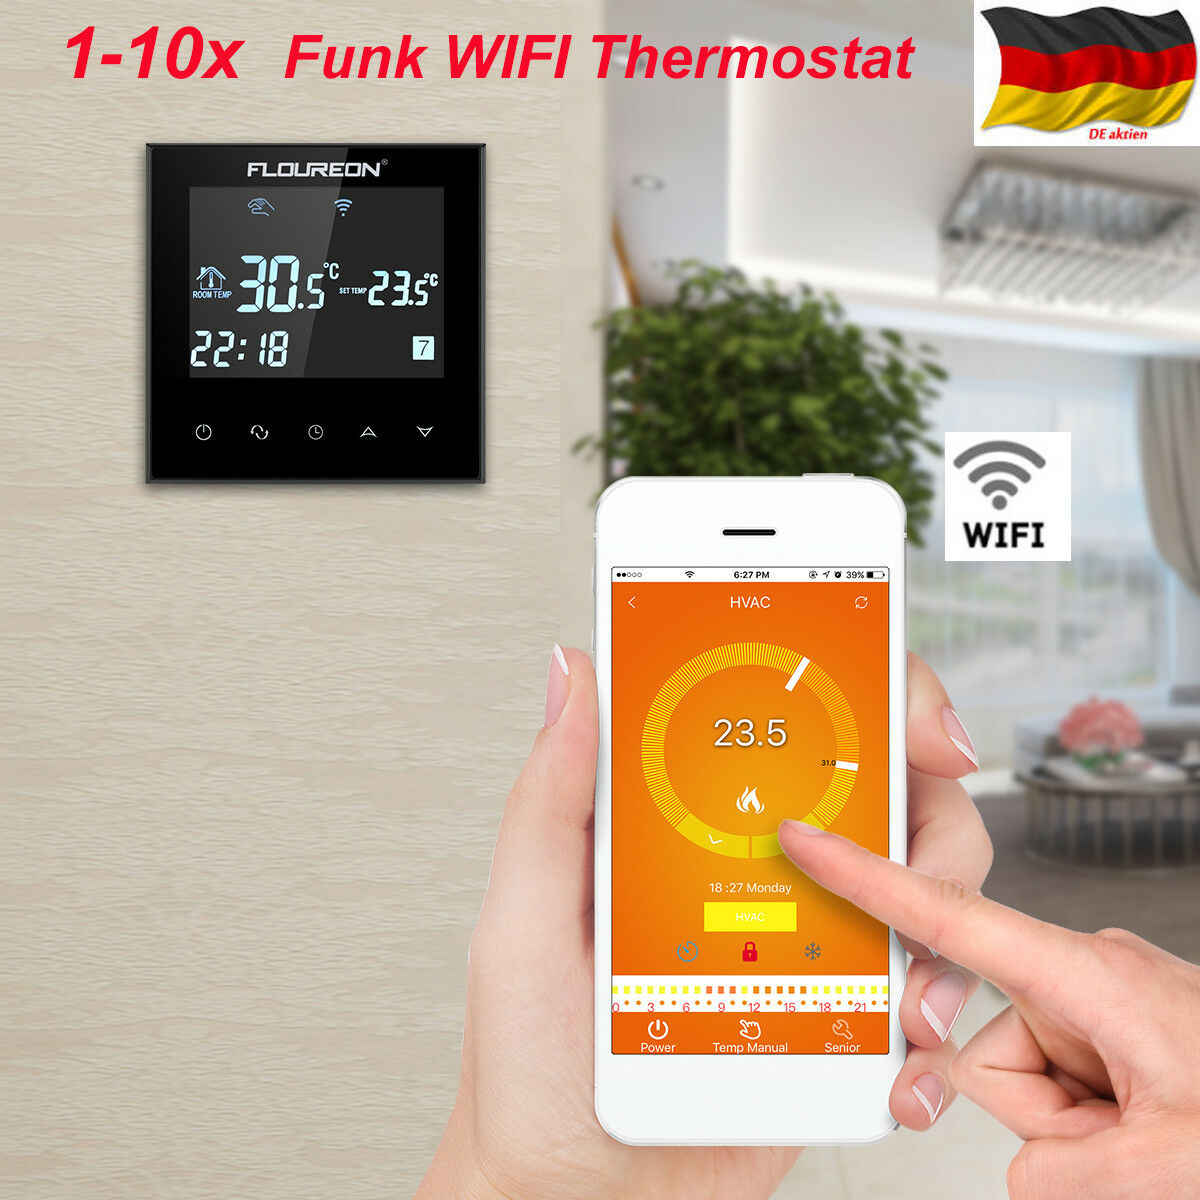 1 10x wifi digital funk thermostat fu bodenheizung lcd raumregler touchscreen eu eur 15 99. Black Bedroom Furniture Sets. Home Design Ideas